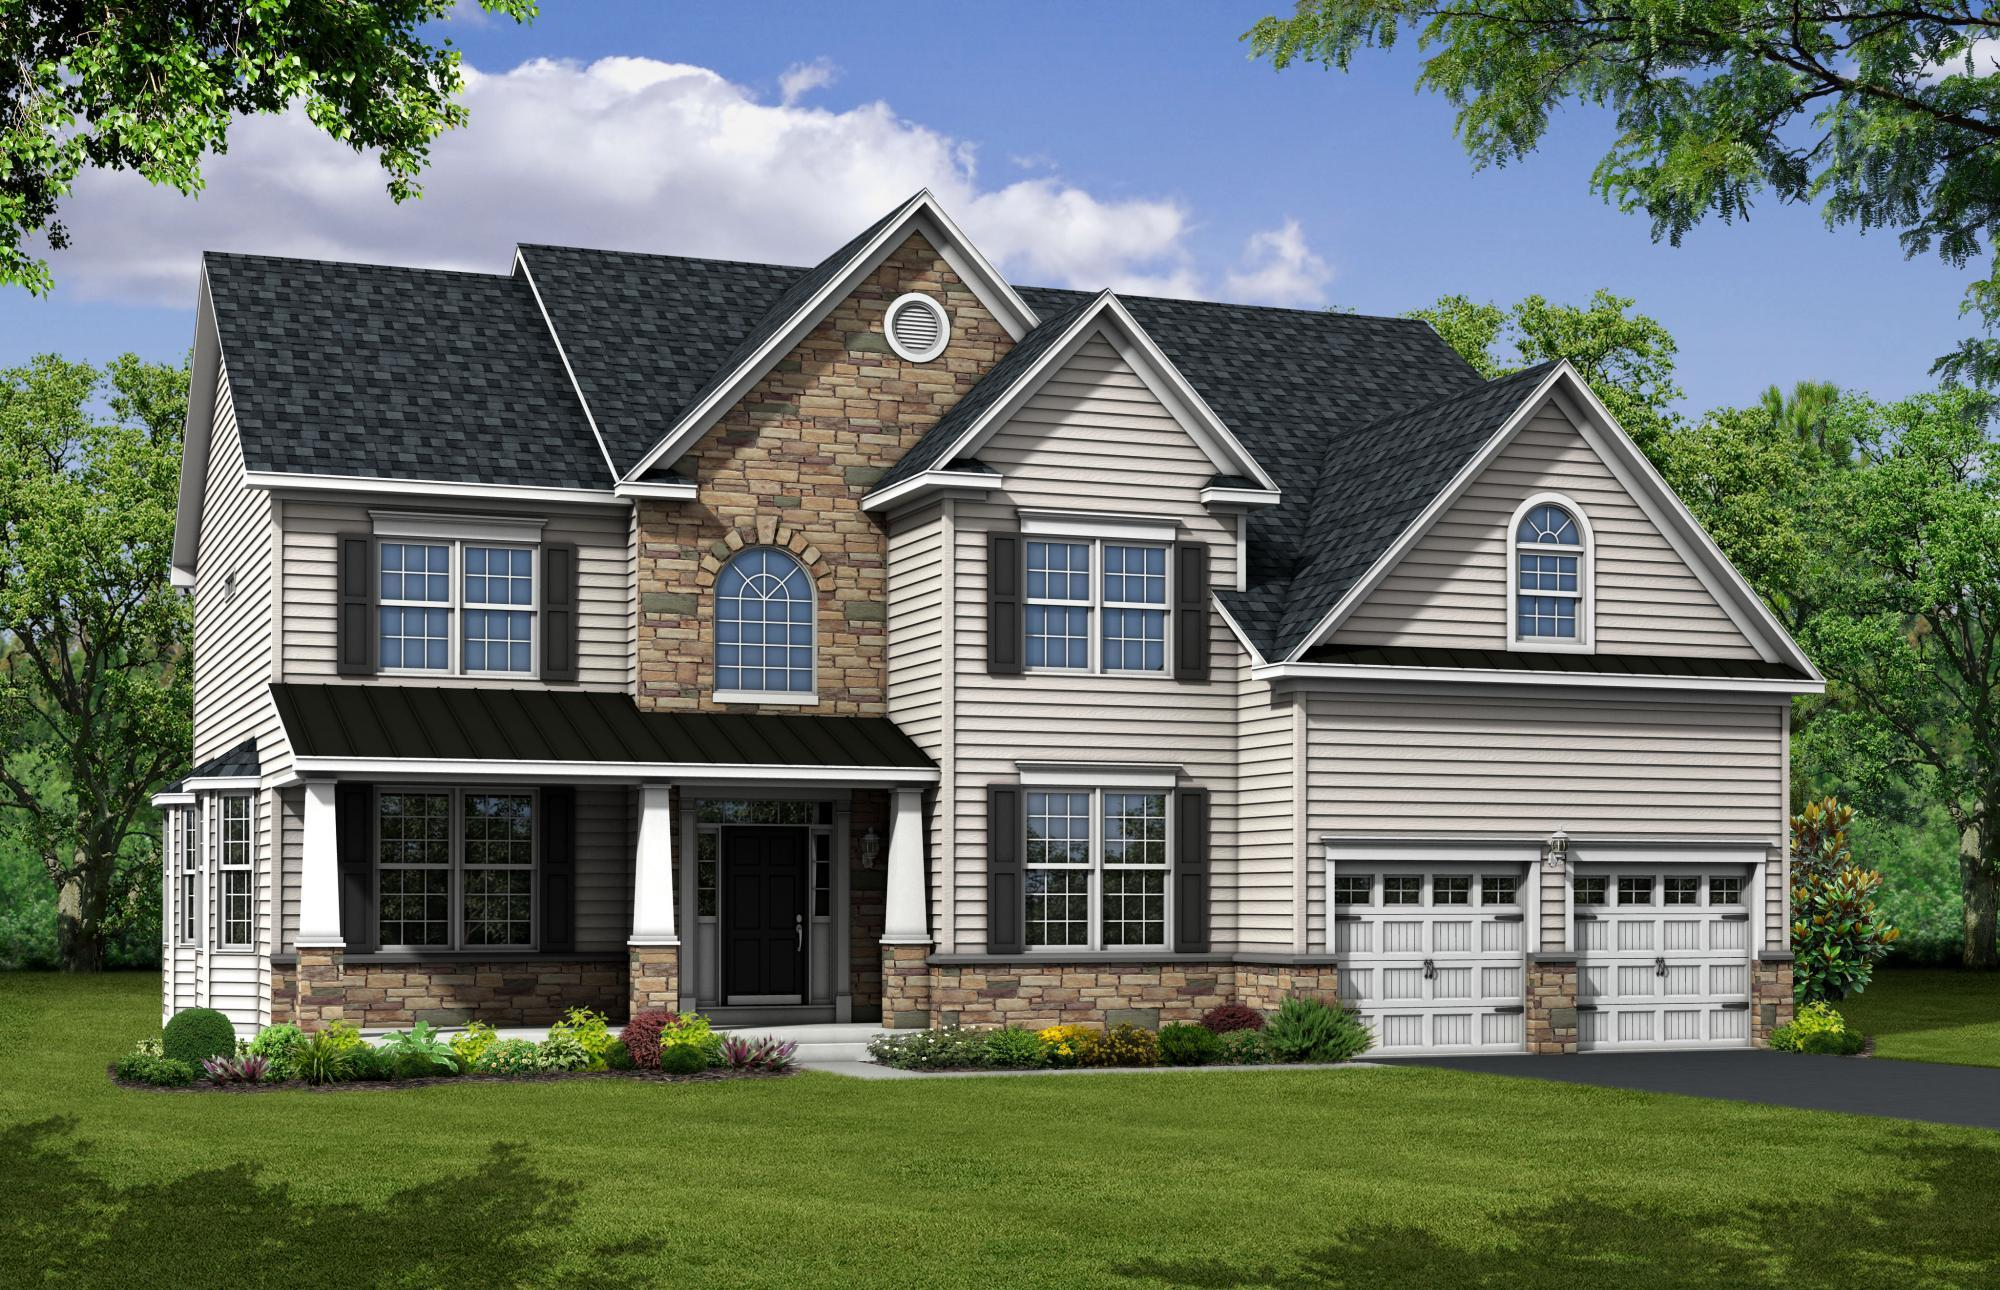 New Builders Homes For Sale Harding Road